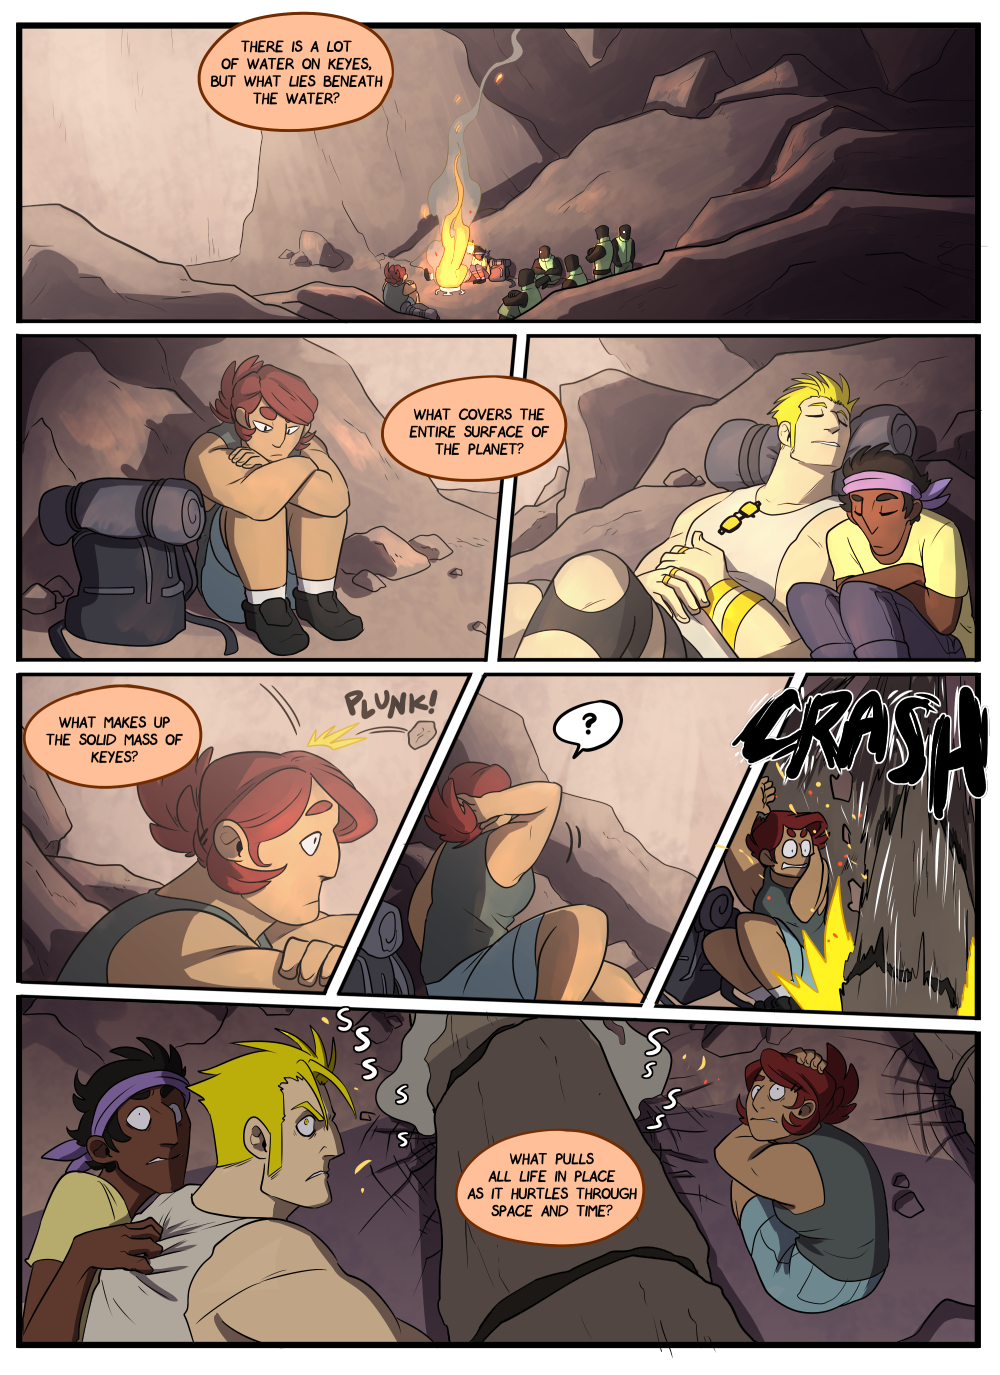 What a nice scene, just a couple of pals camping in a spooky cave togethe– oh. Hm. Hmmmmm.